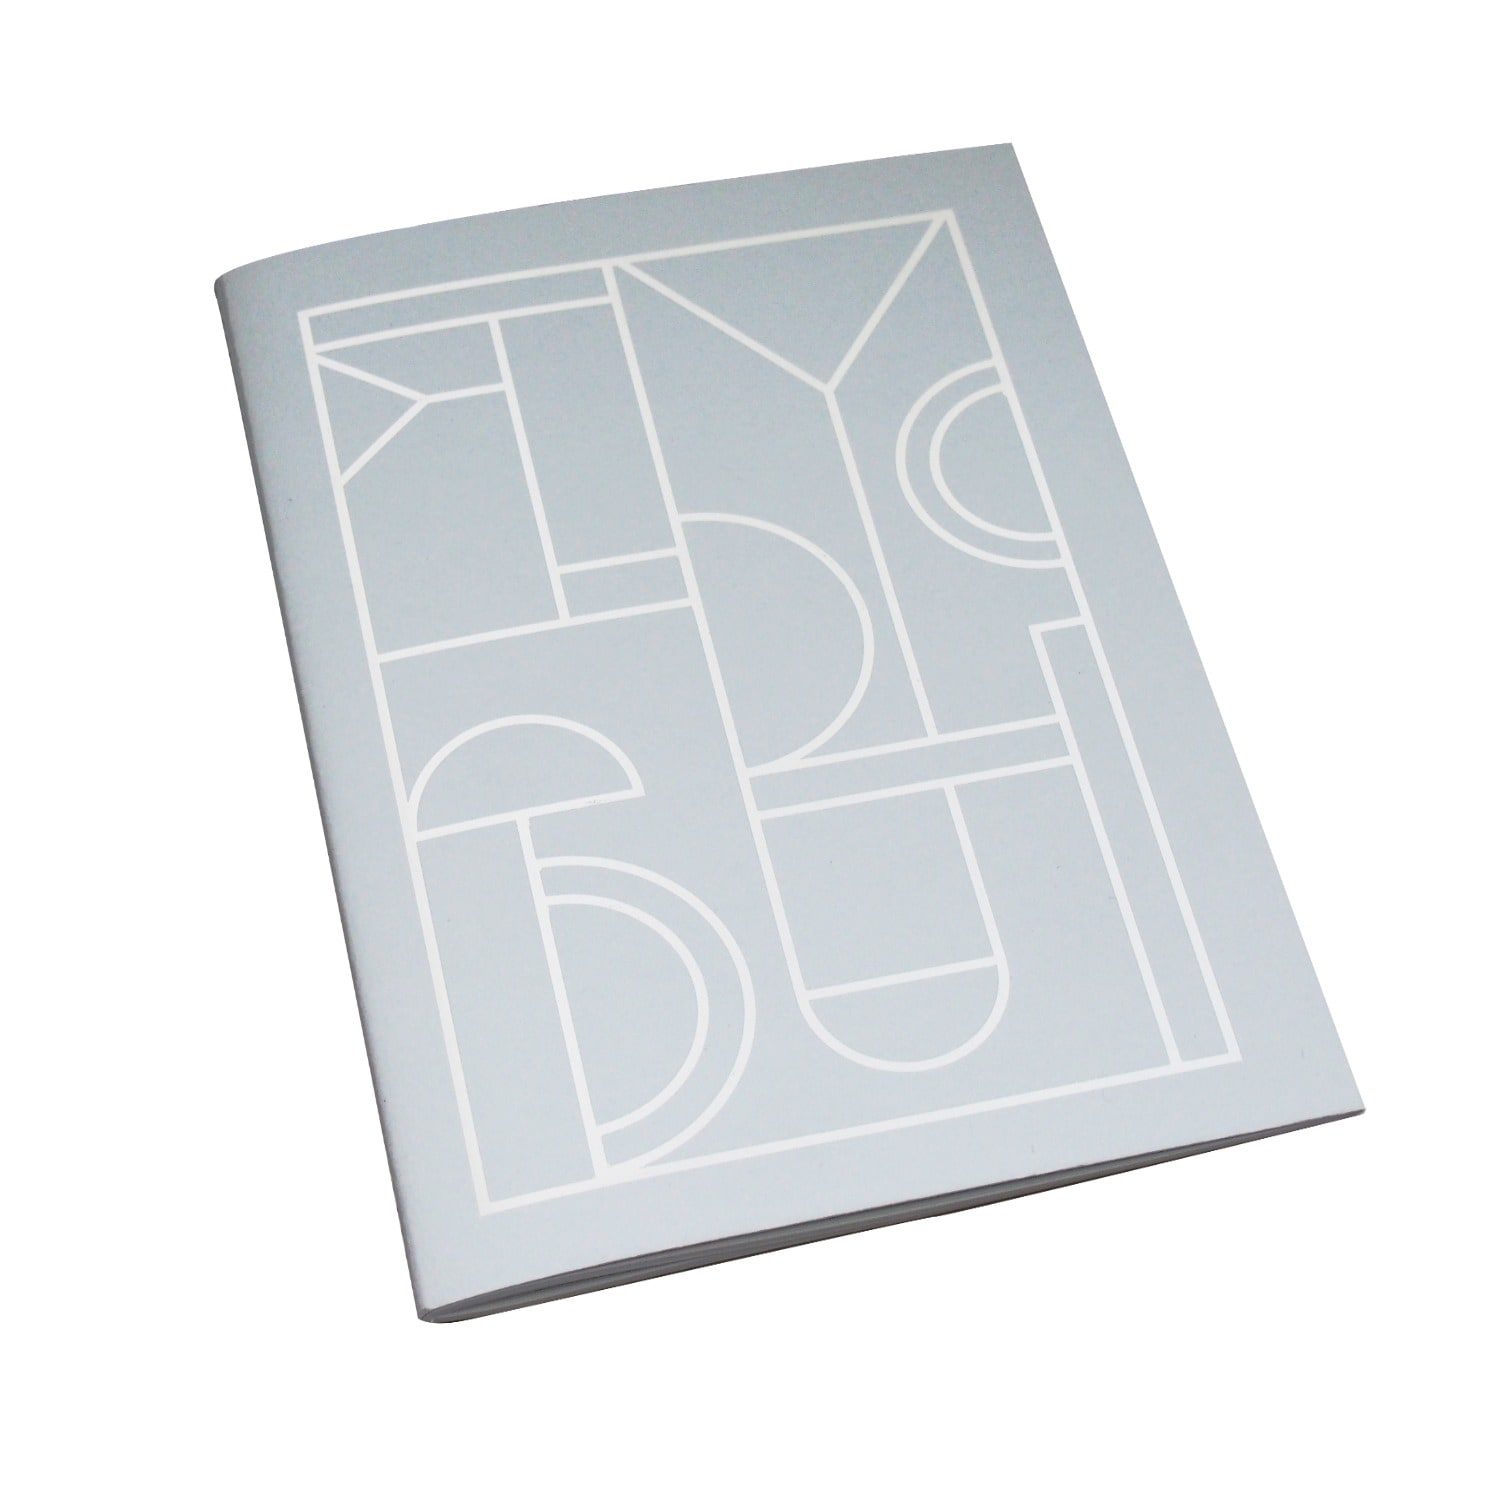 Nylon Sky - Foil Printed Notebook A5 Grey